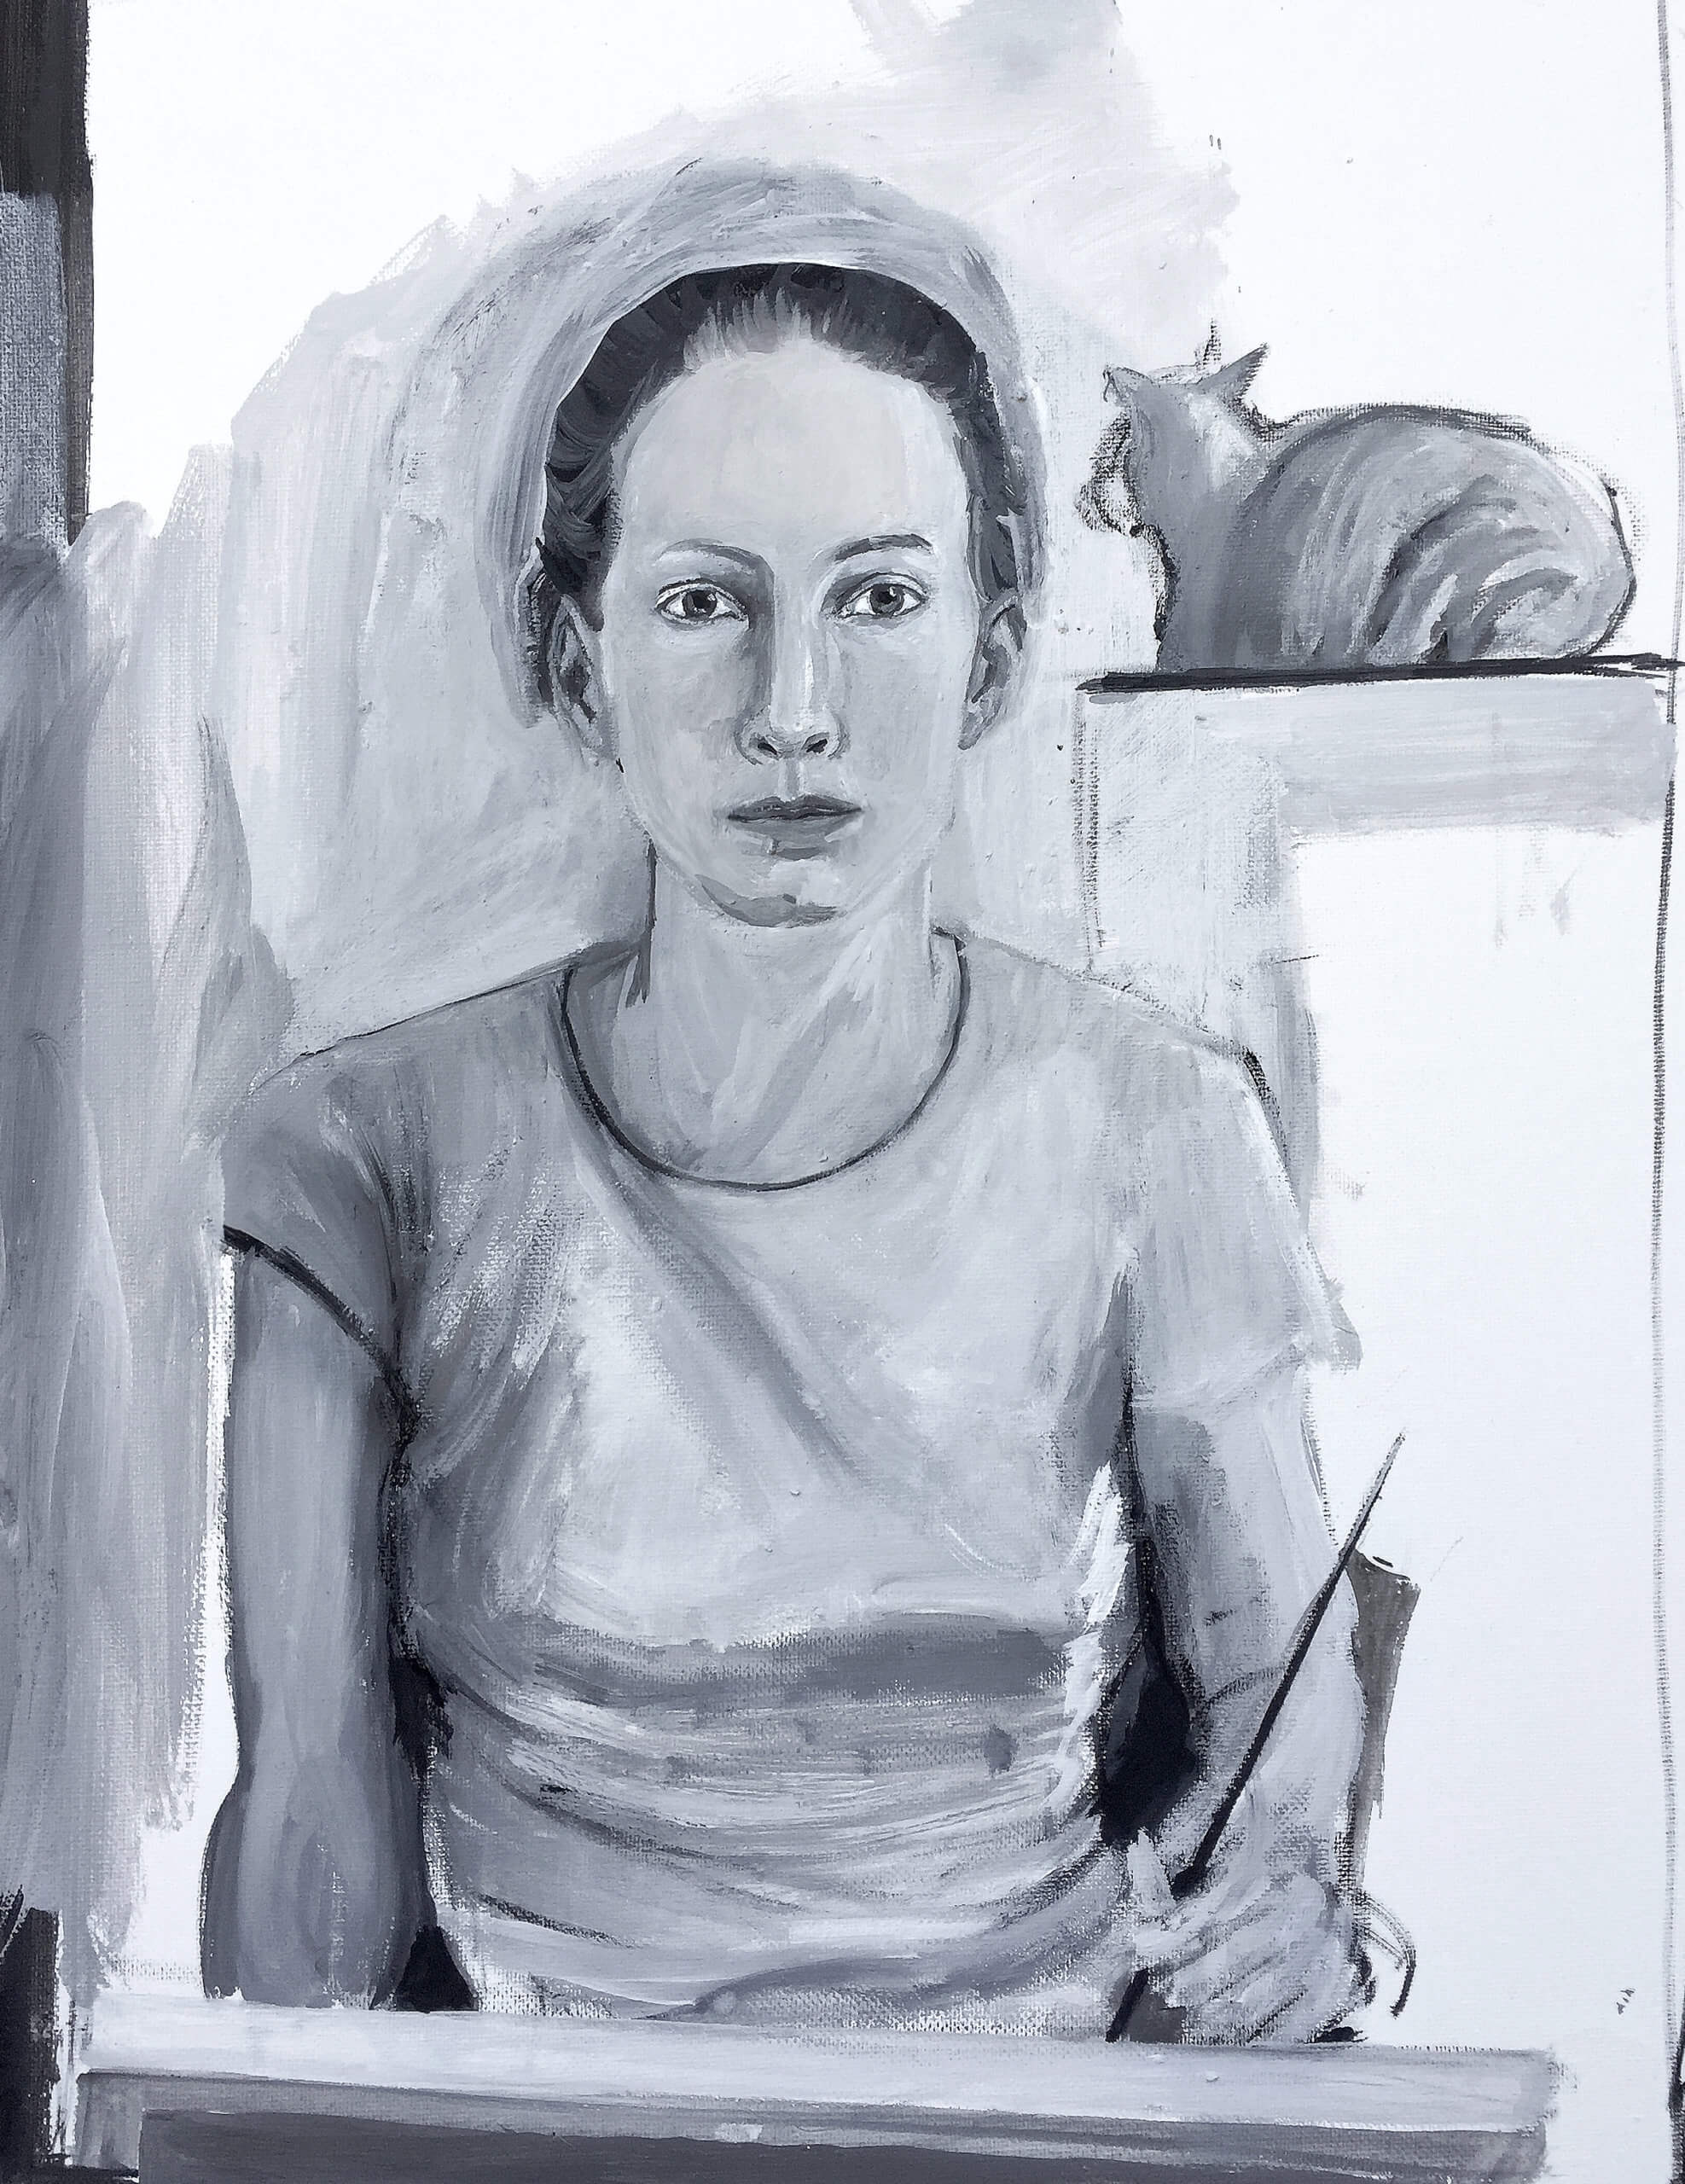 Haley Mellin Self-Portrait (with Orange Cat), 2020 acrylic, tempera and gouache on canvas, in artist's frame 16 1/2 x 12 1/2 in. (41.9 x 31.8 cm.)